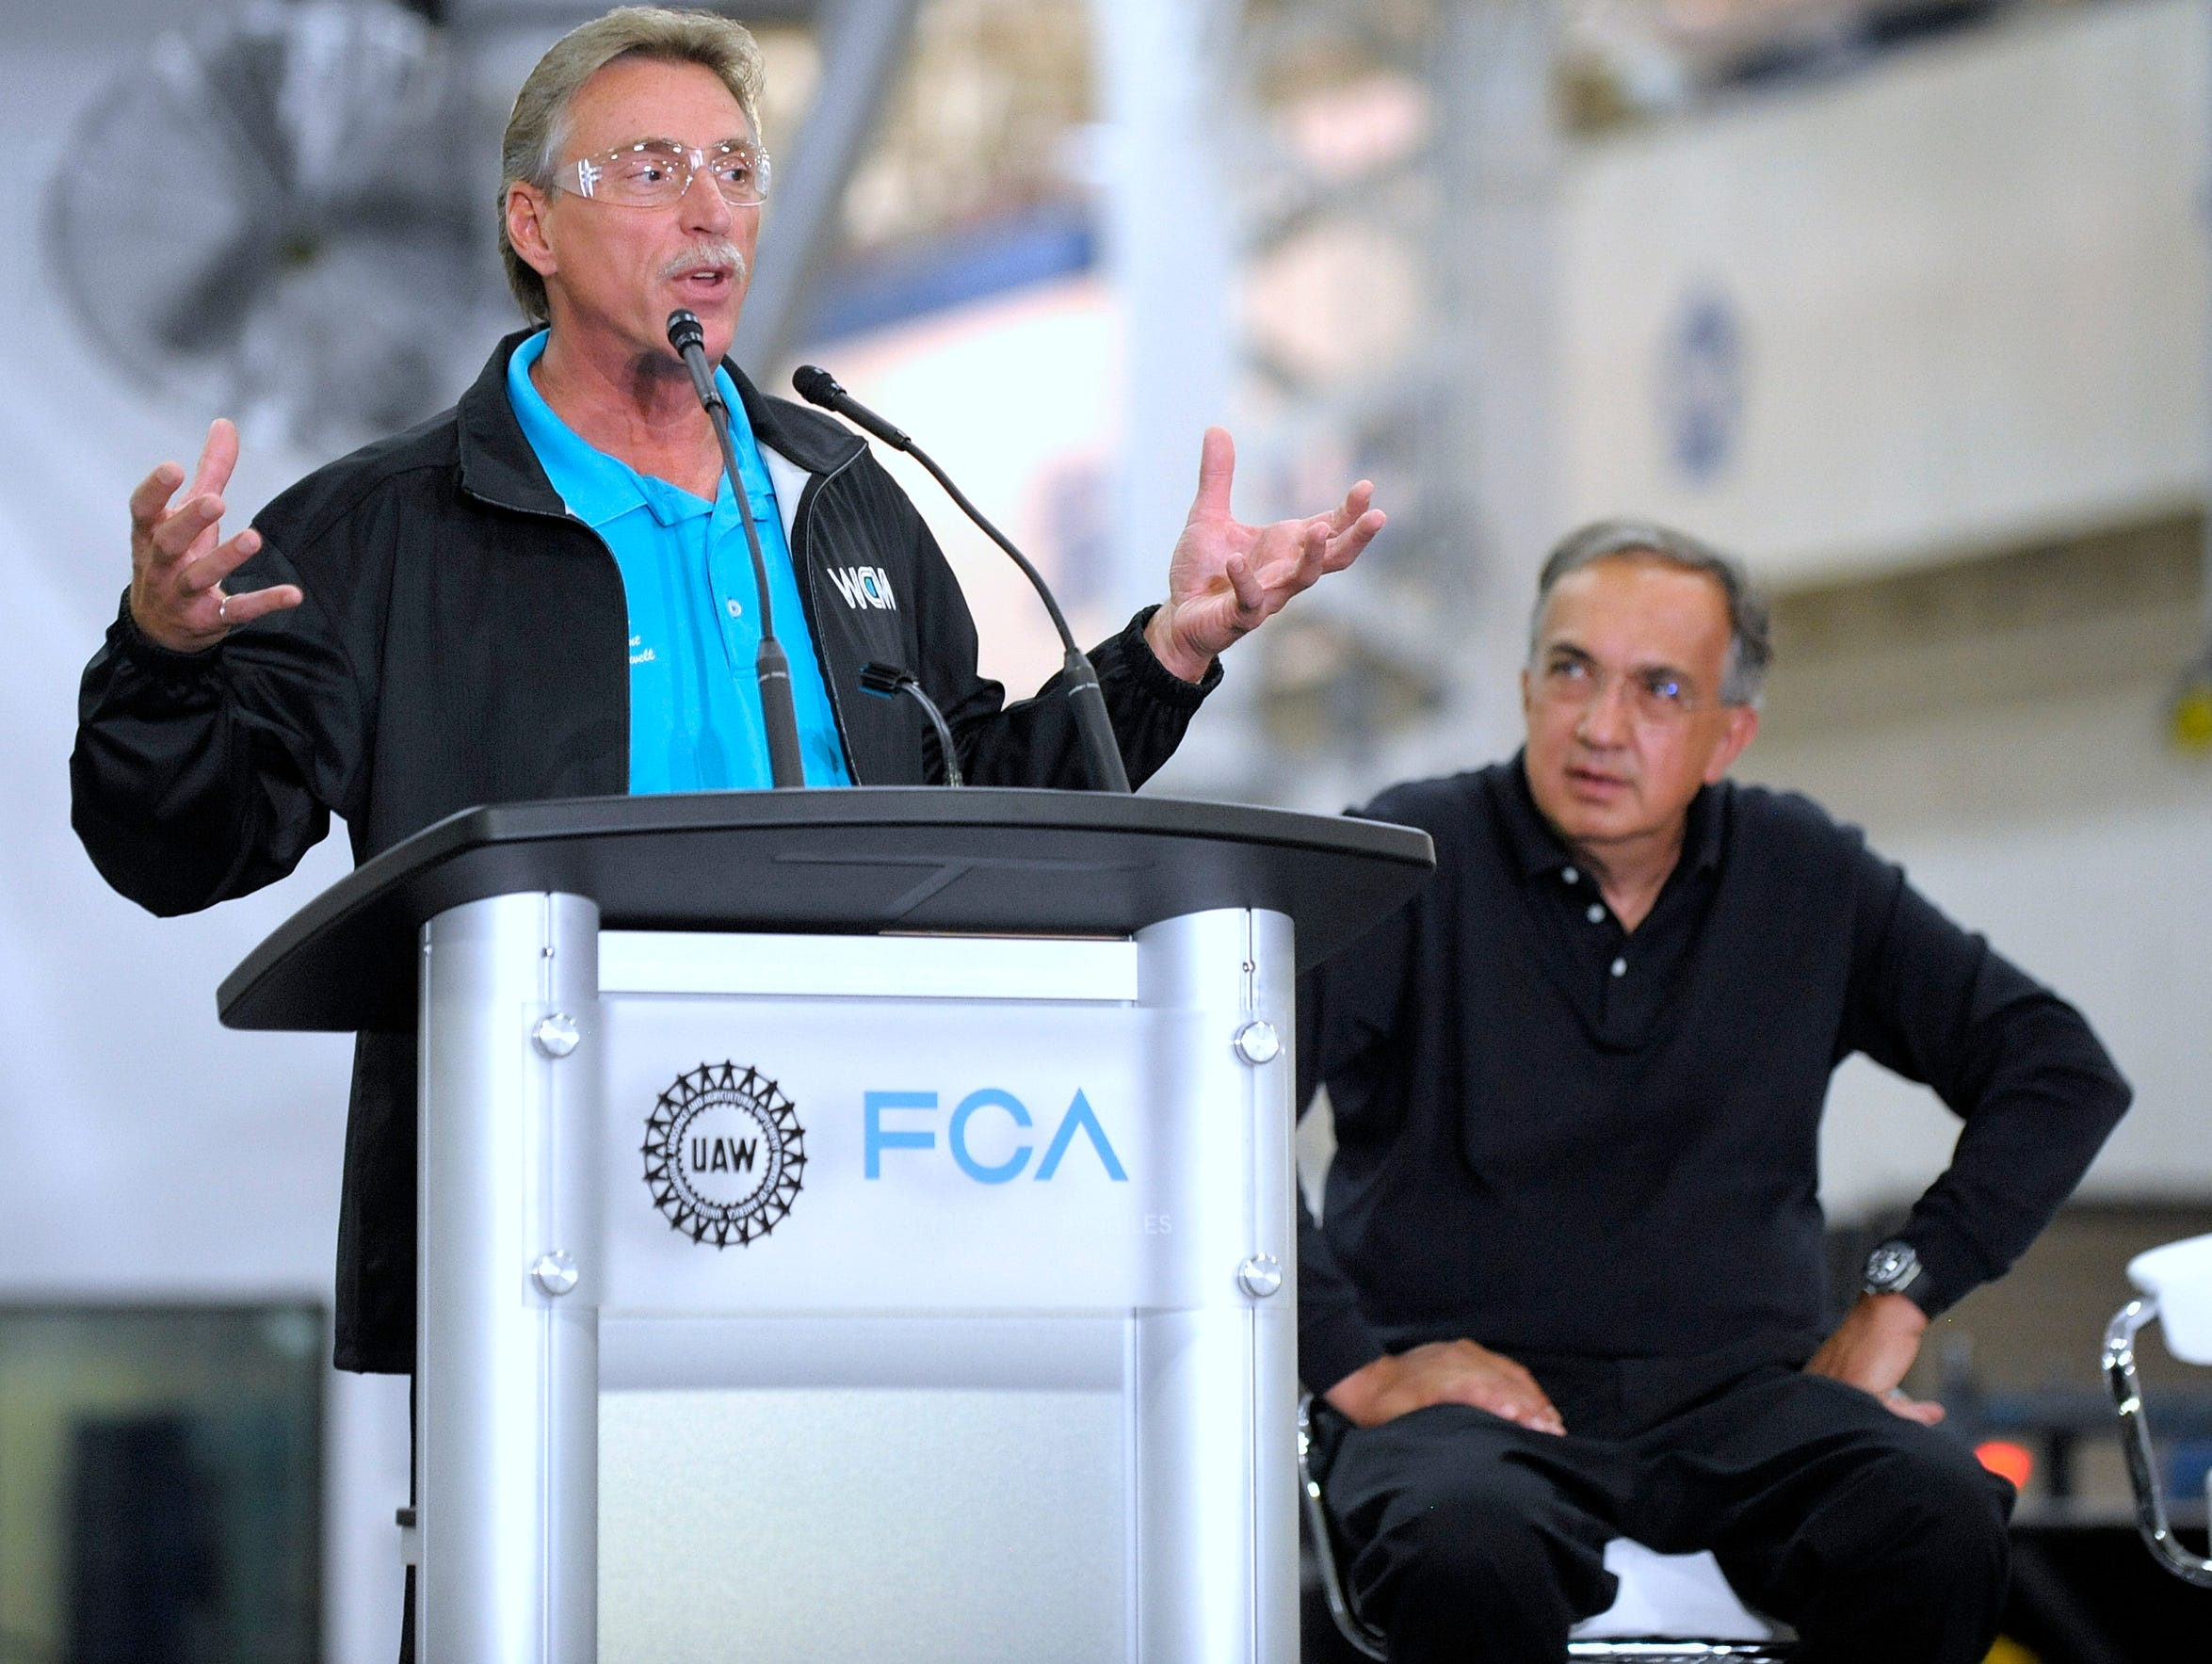 Norwood Jewell, UAW V.P. of the FCA US Department, speaks at the Sterling Stamping Plant in 2016 s FCA CEO Sergio Marchionne listens.